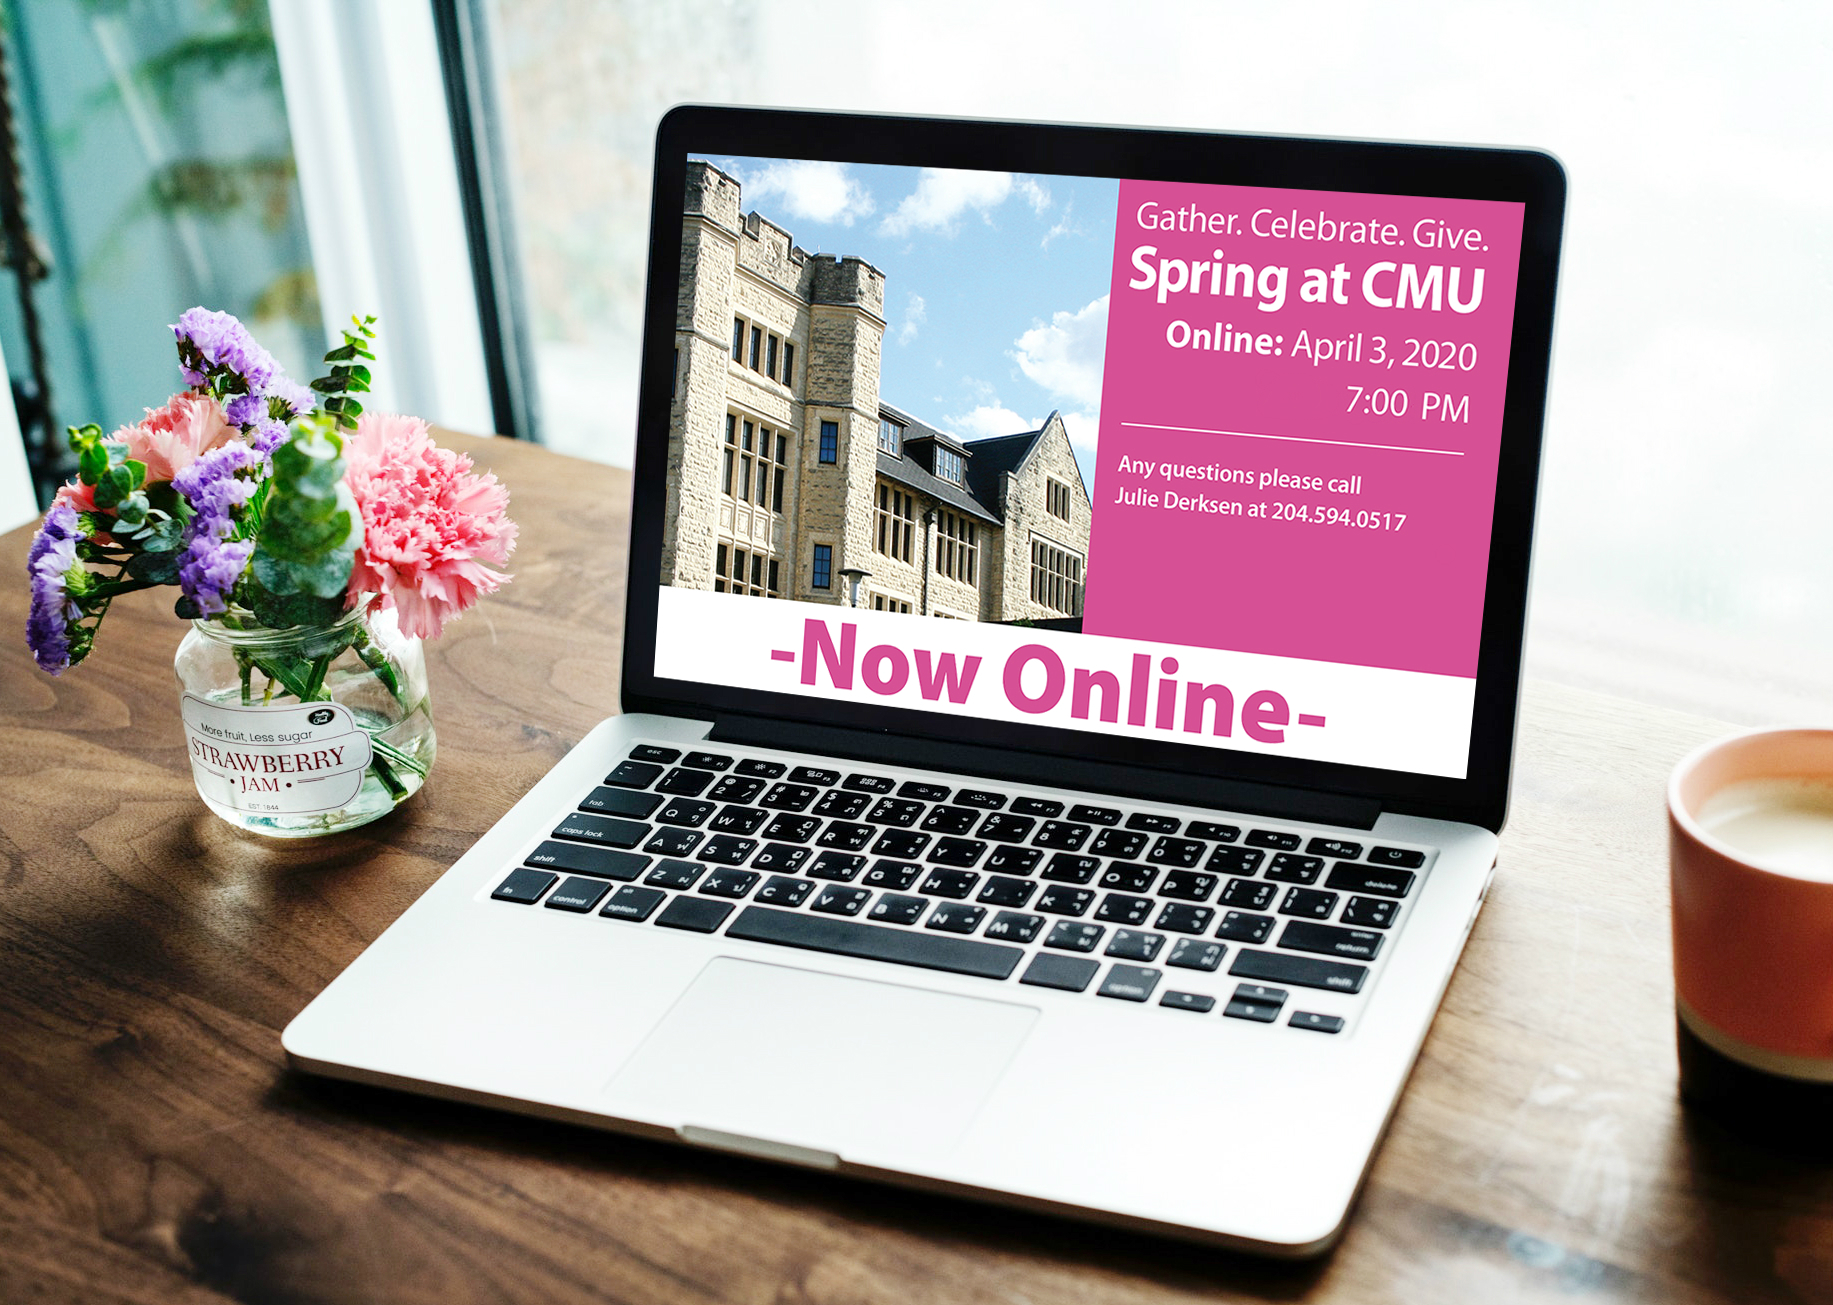 Gather. Give. Celebrate. Spring at CMU